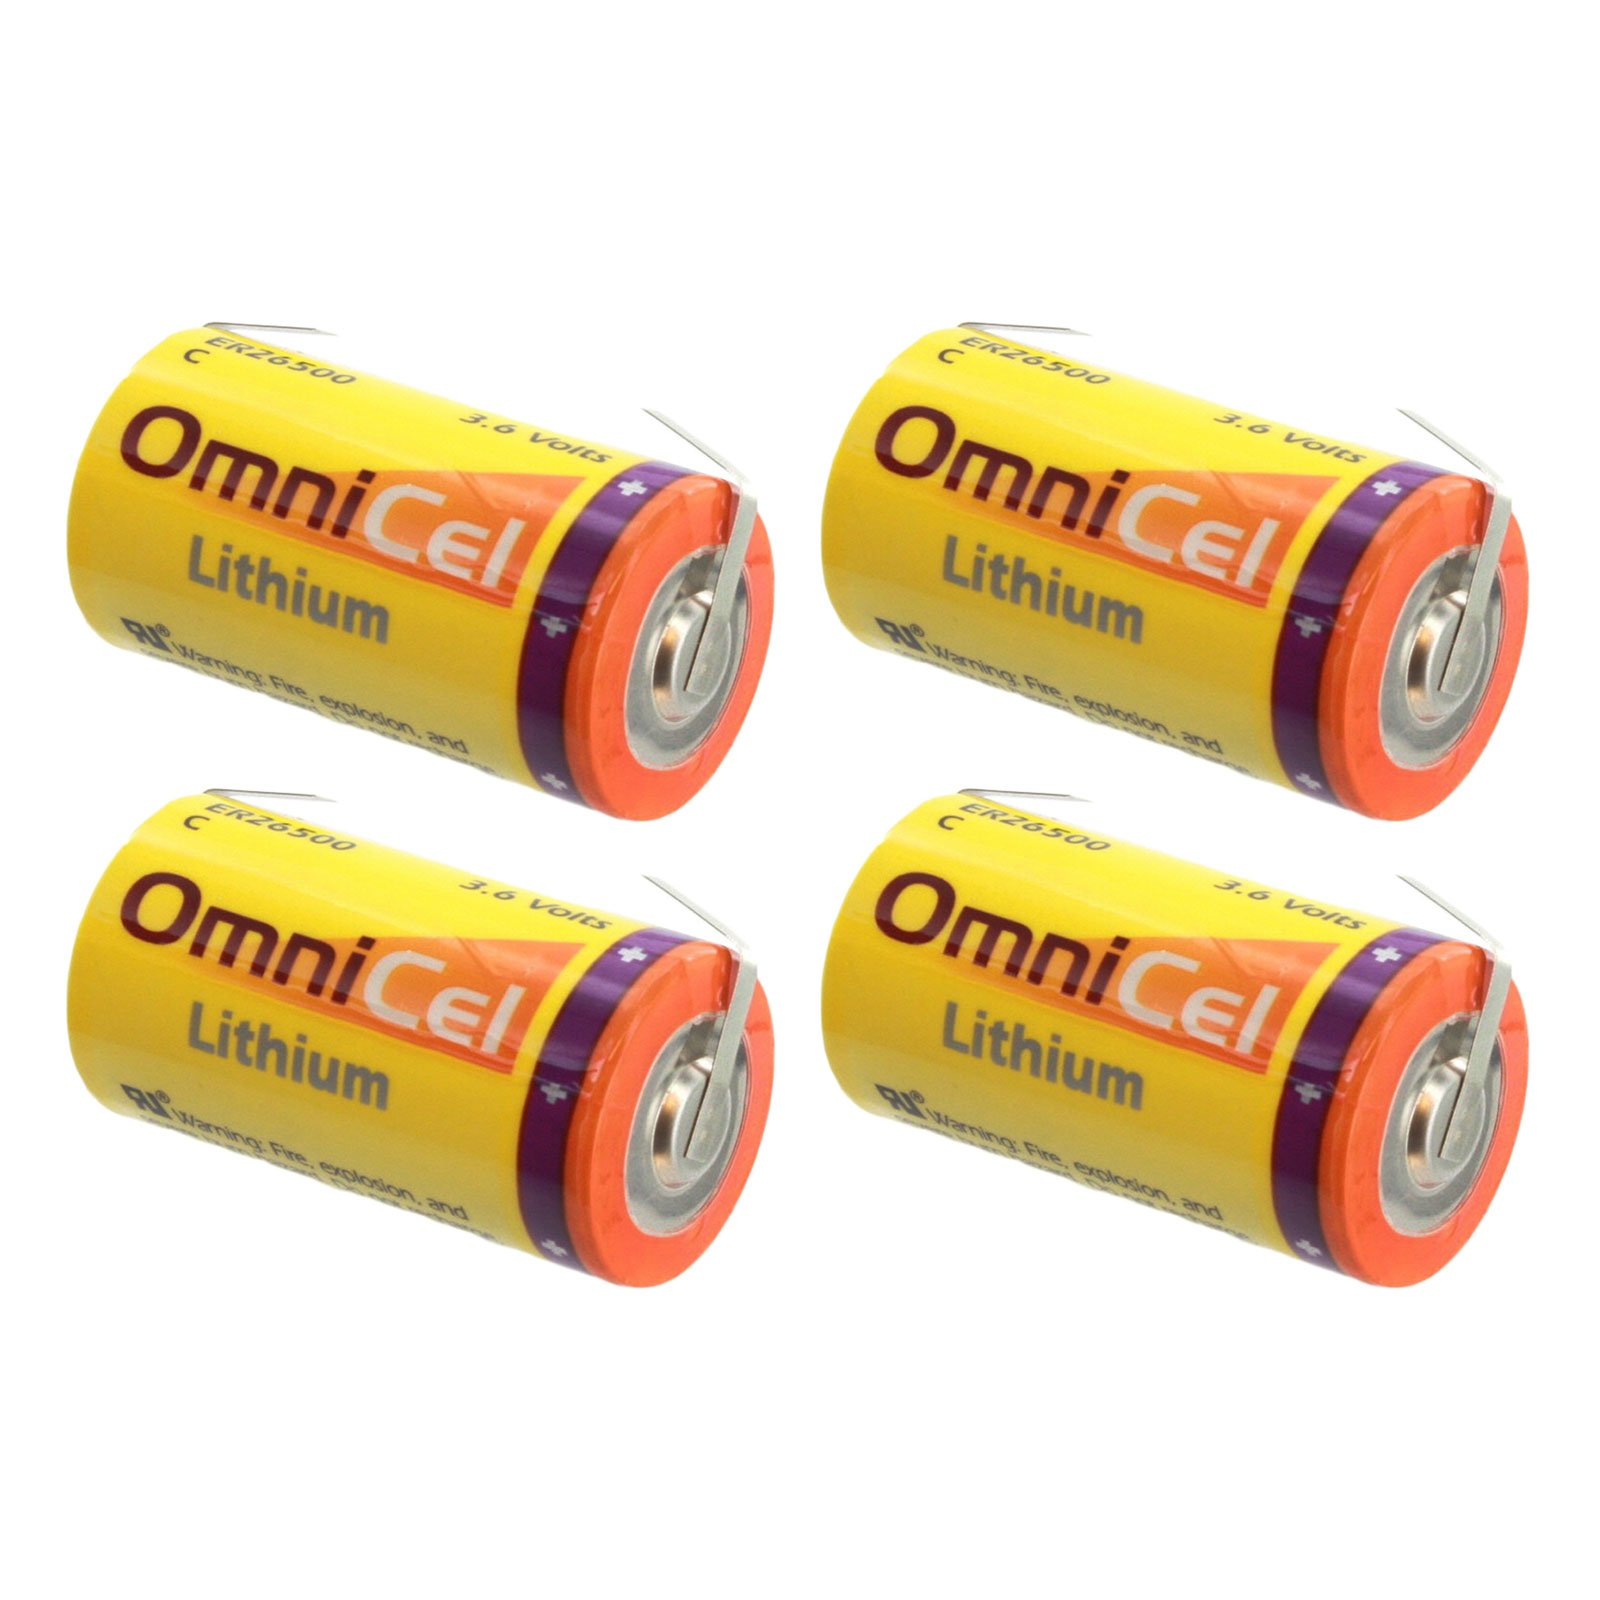 4x OmniCel ER26500 3.6V 8.5Ah Size C Lithium Battery w/ Tabs For Tracking Devices for Dogs, Carbon Monoxide Detectors, Intrusion Sensors, Earthquake tester, Numerical Control Tool, Taximeter by Exell Battery